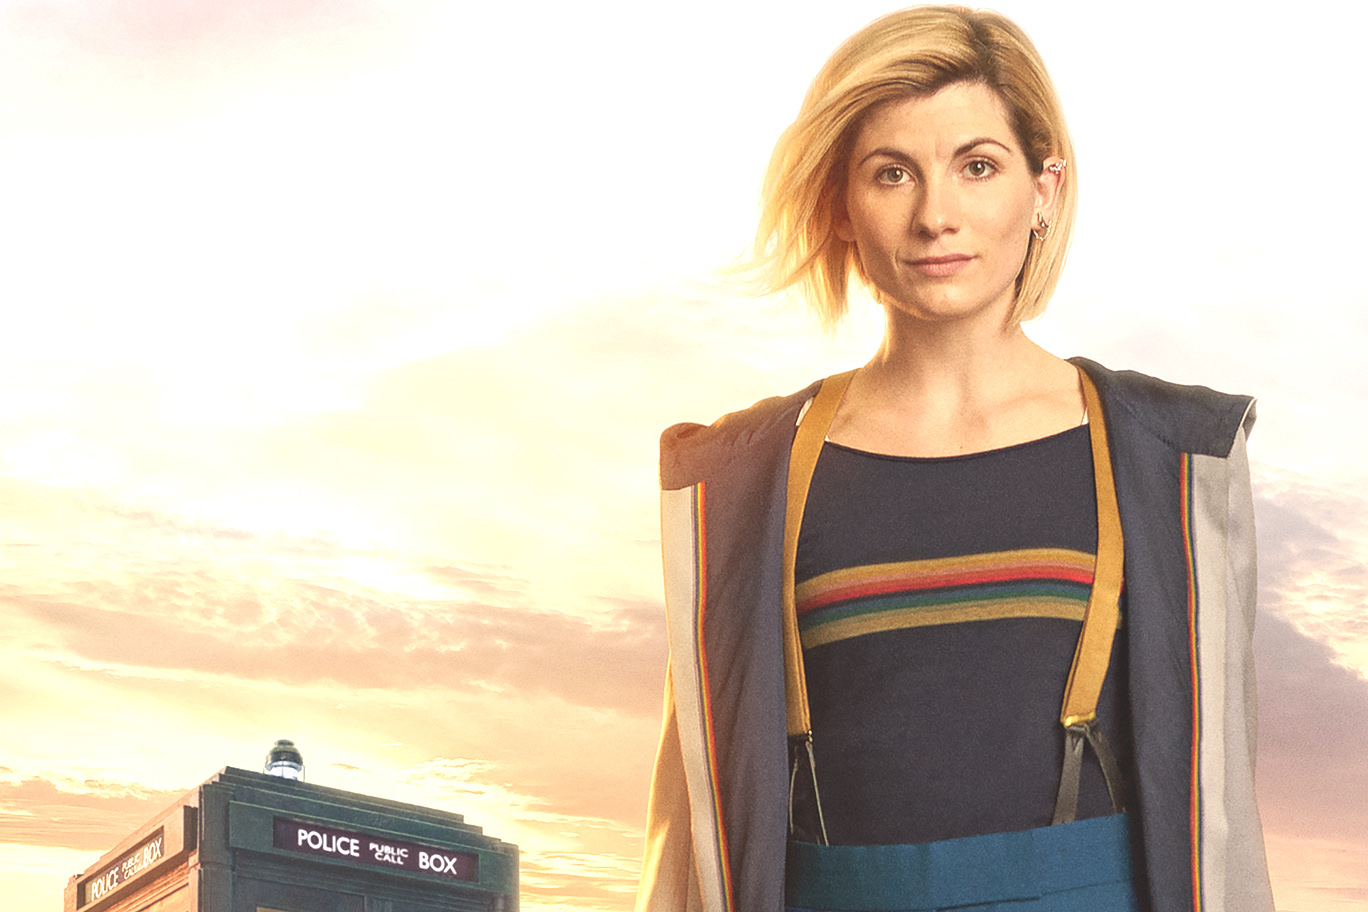 u0027Doctor Whou0027 Jodie Whittakeru0027s New Doctor Quirky Costume Is Perfect for Cosplay and Adventuring | IndieWire  sc 1 st  IndieWire & Doctor Whou0027: Jodie Whittakeru0027s New Doctor Quirky Costume Is Perfect ...